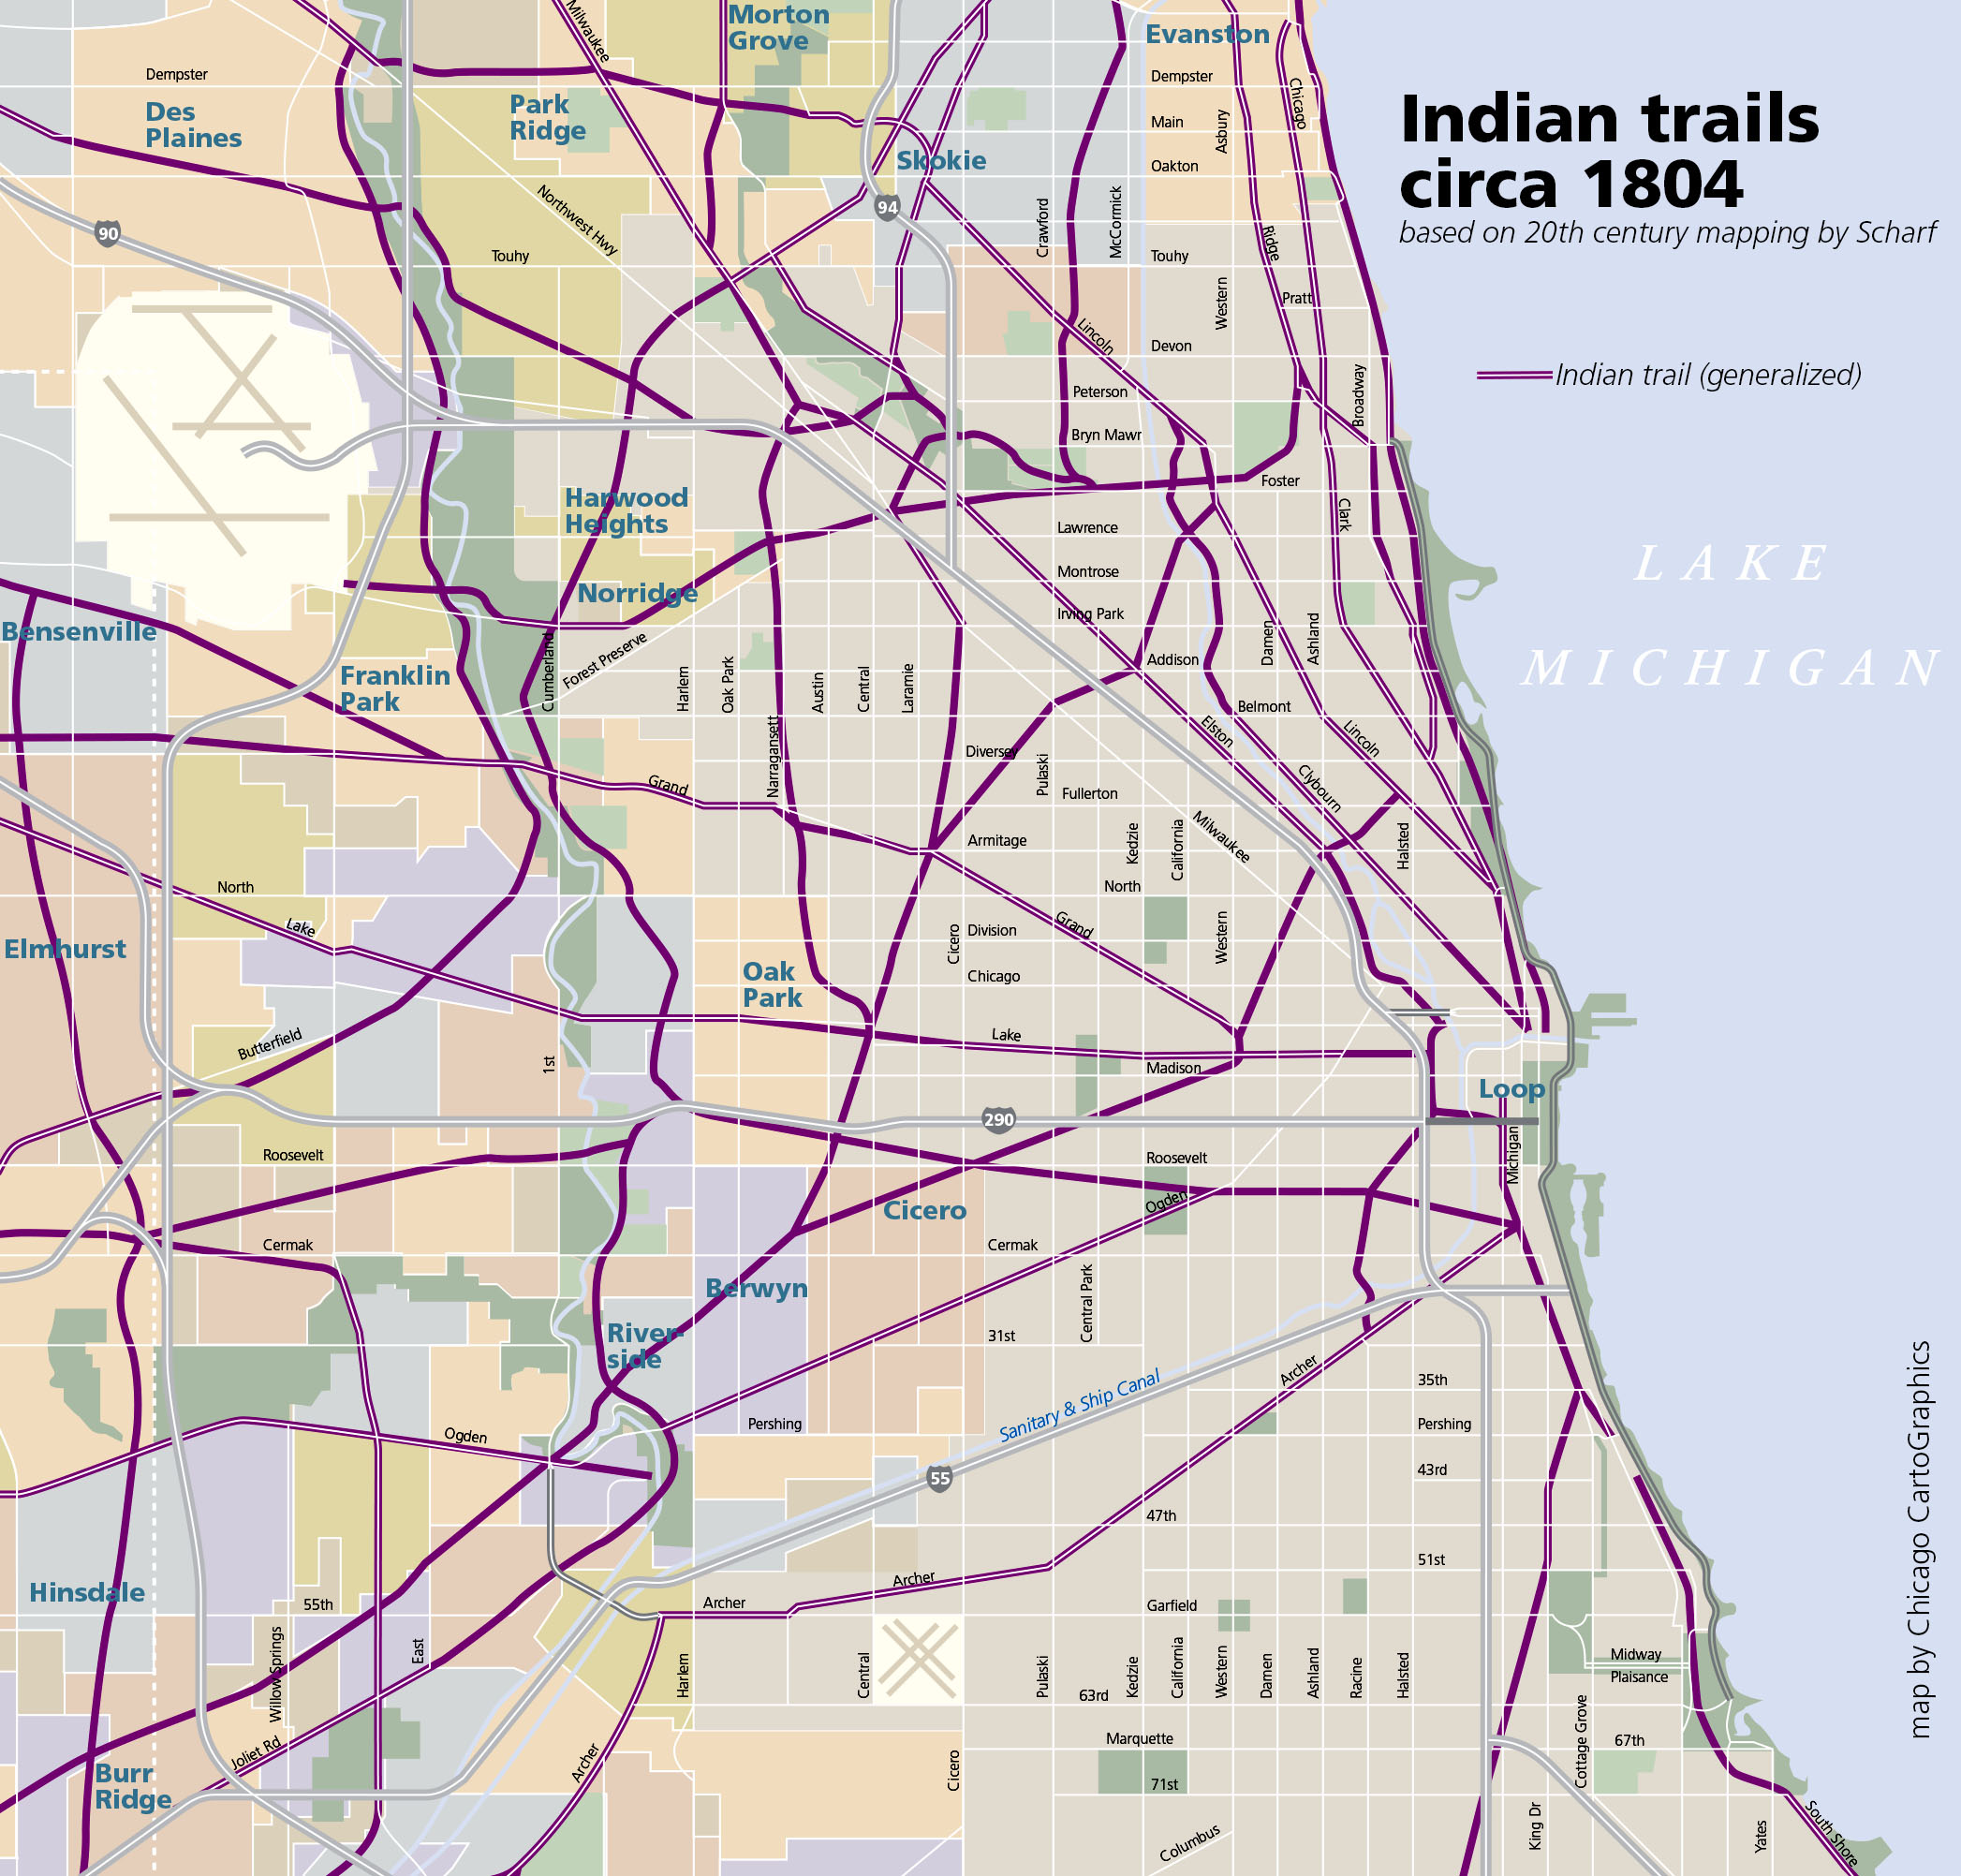 Chicago in Maps